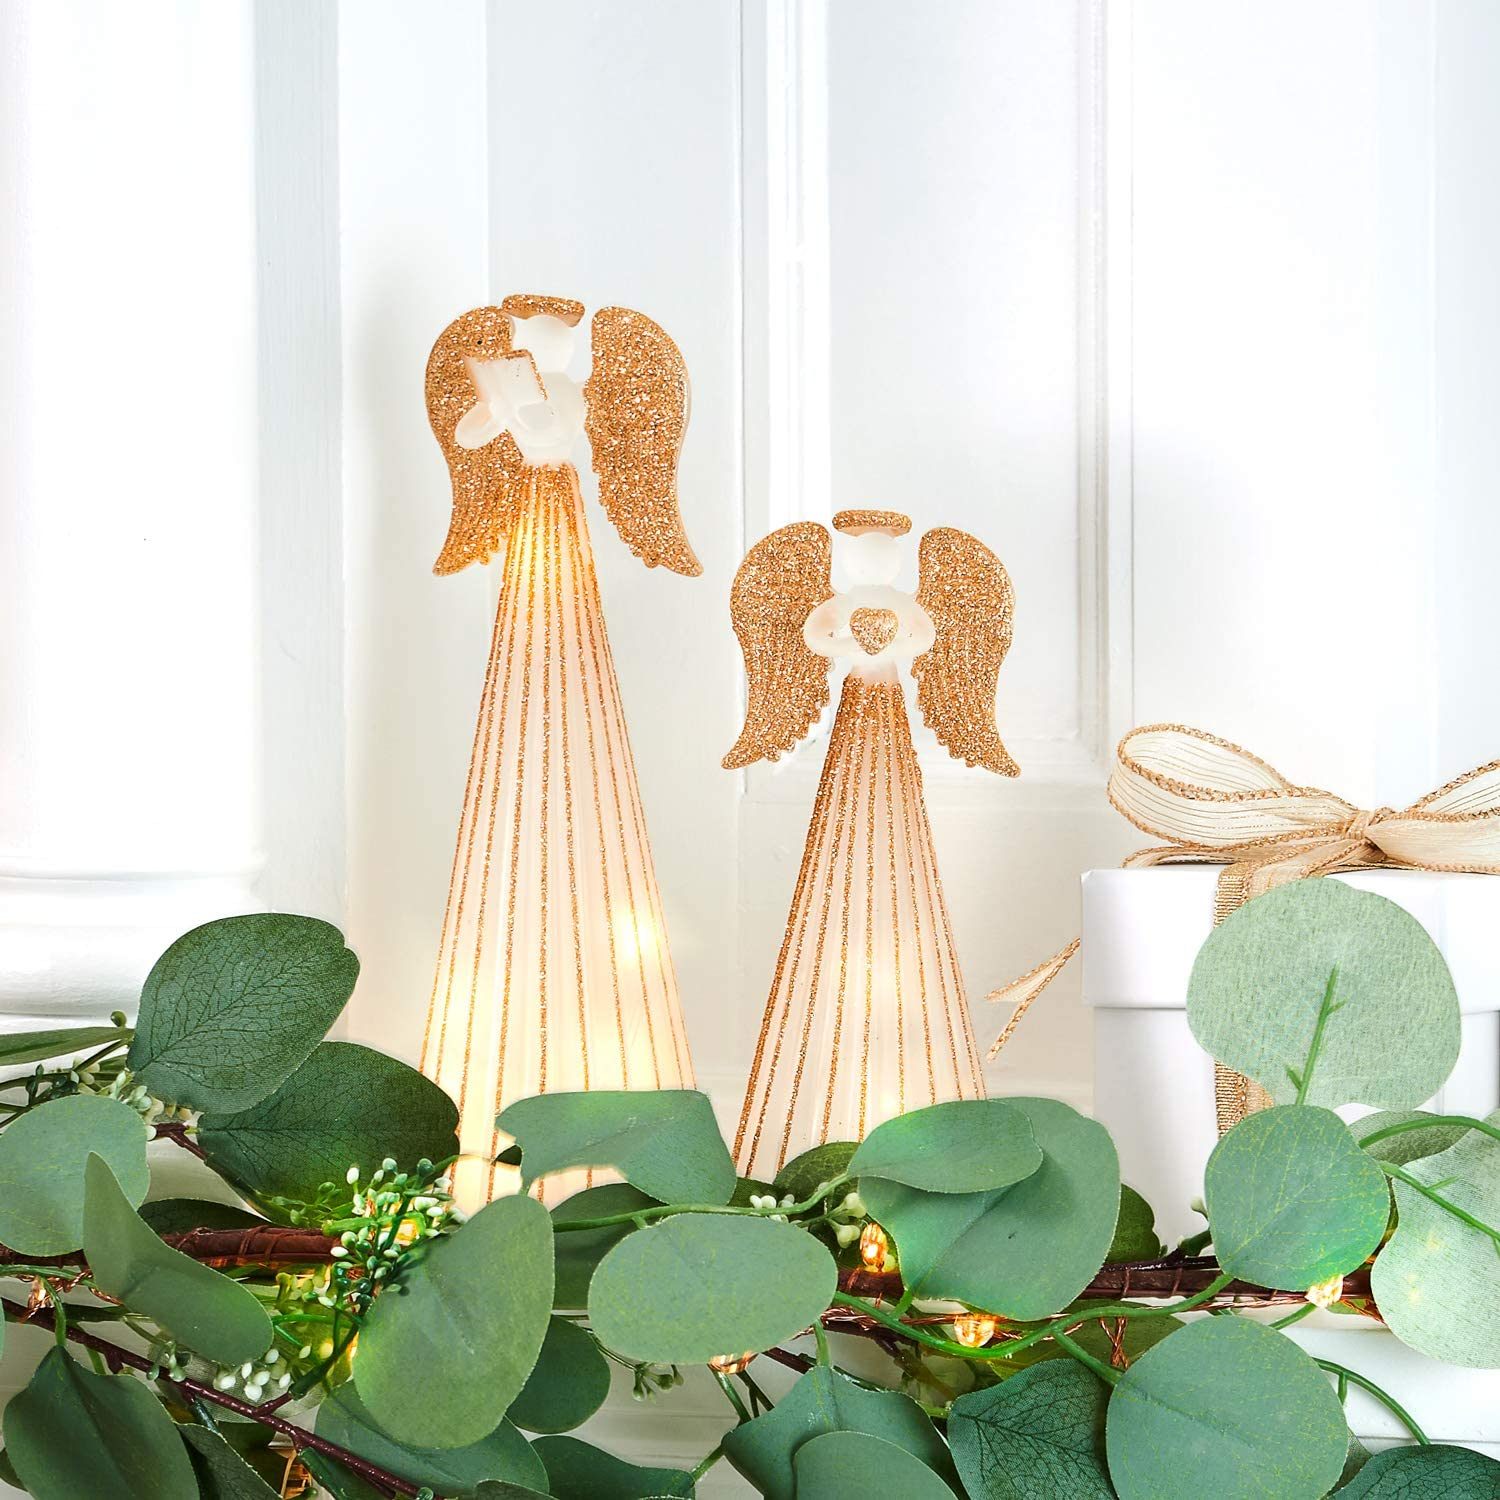 Christmas Angel Figurines with Lights - Set of 2 Statues, Frosted Glass & Gold Glitter, 6 Inch & 8 Inch Tall, LED Fairy Lights Inside, Batteries Included, Holiday Table Centerpiece Mantle Decorations